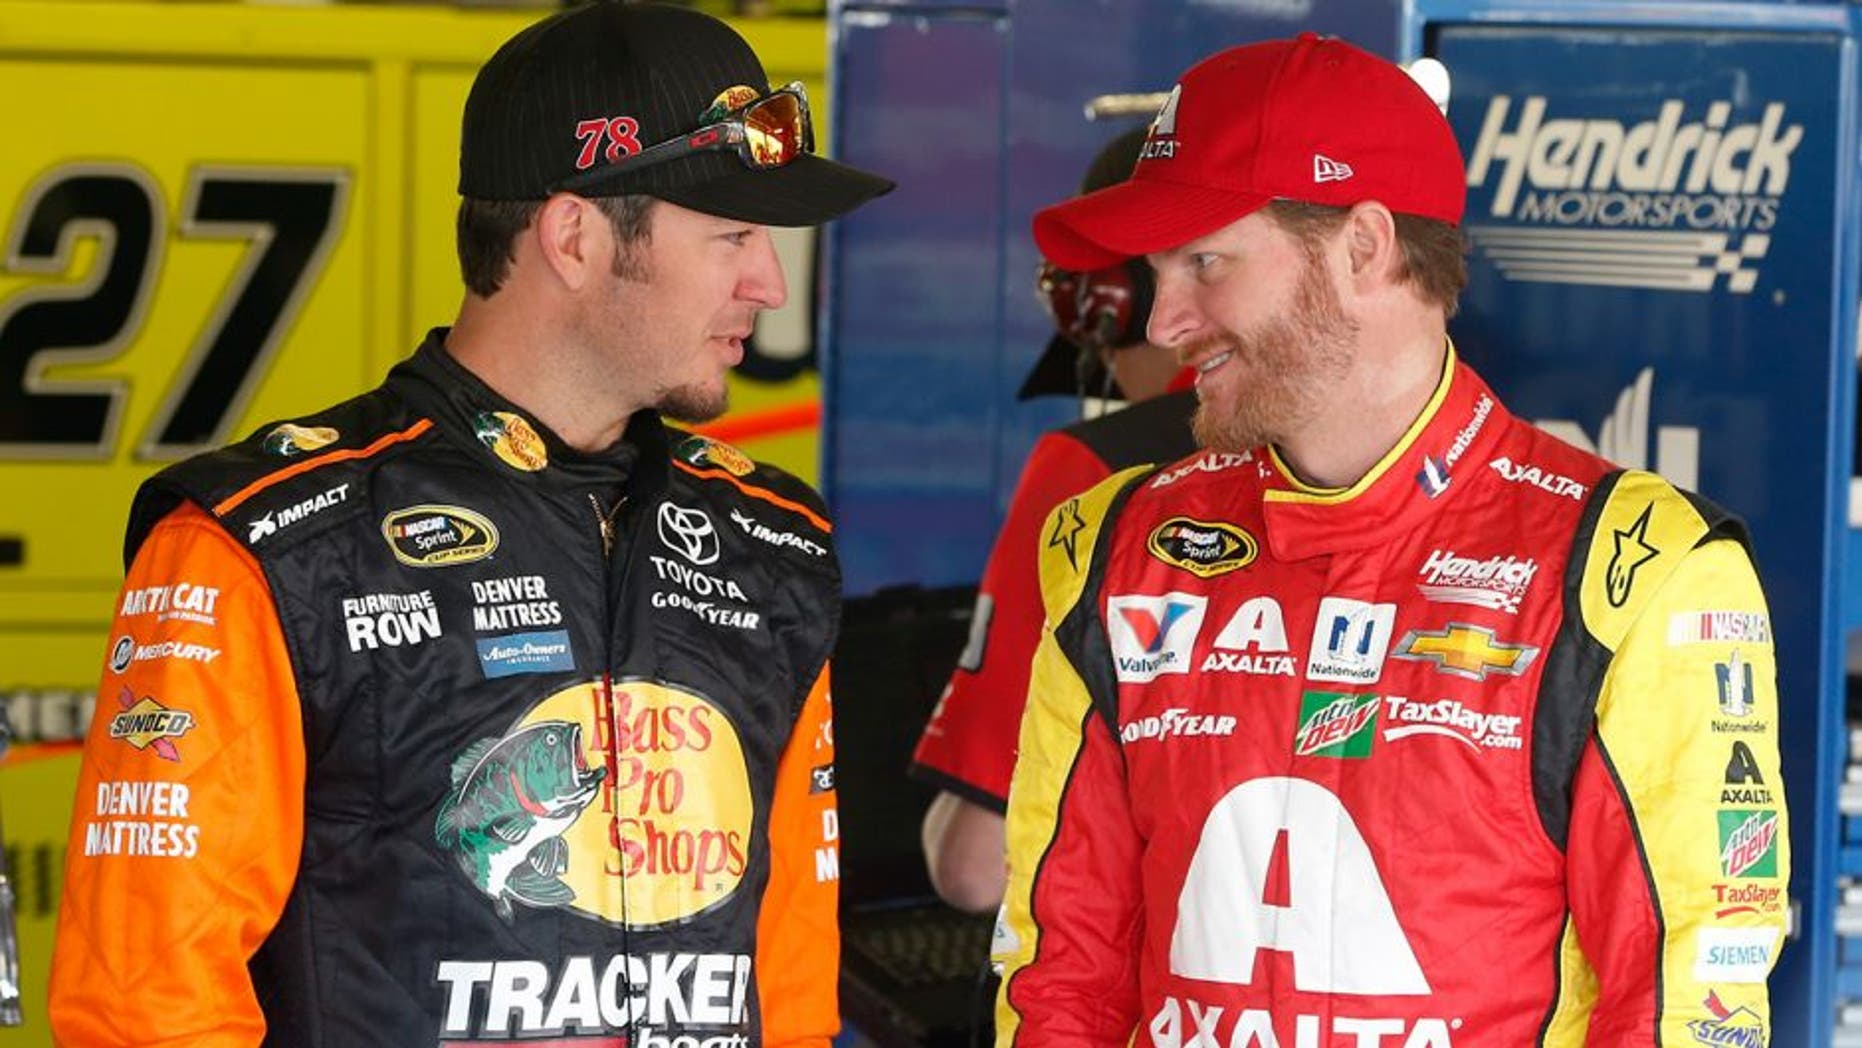 KANSAS CITY, KS - MAY 06: Martin Truex Jr., driver of the #78 Bass Pro Shops/TRACKER Boats Toyota Toyota, talks with Dale Earnhardt Jr., driver of the #88 Axalta Chevrolet, before practice for the NASCAR Sprint Cup Series Go Bowling 400 at Kansas Speedway on May 6, 2016 in Kansas City, Kansas. (Photo by Brian Lawdermilk/Getty Images)